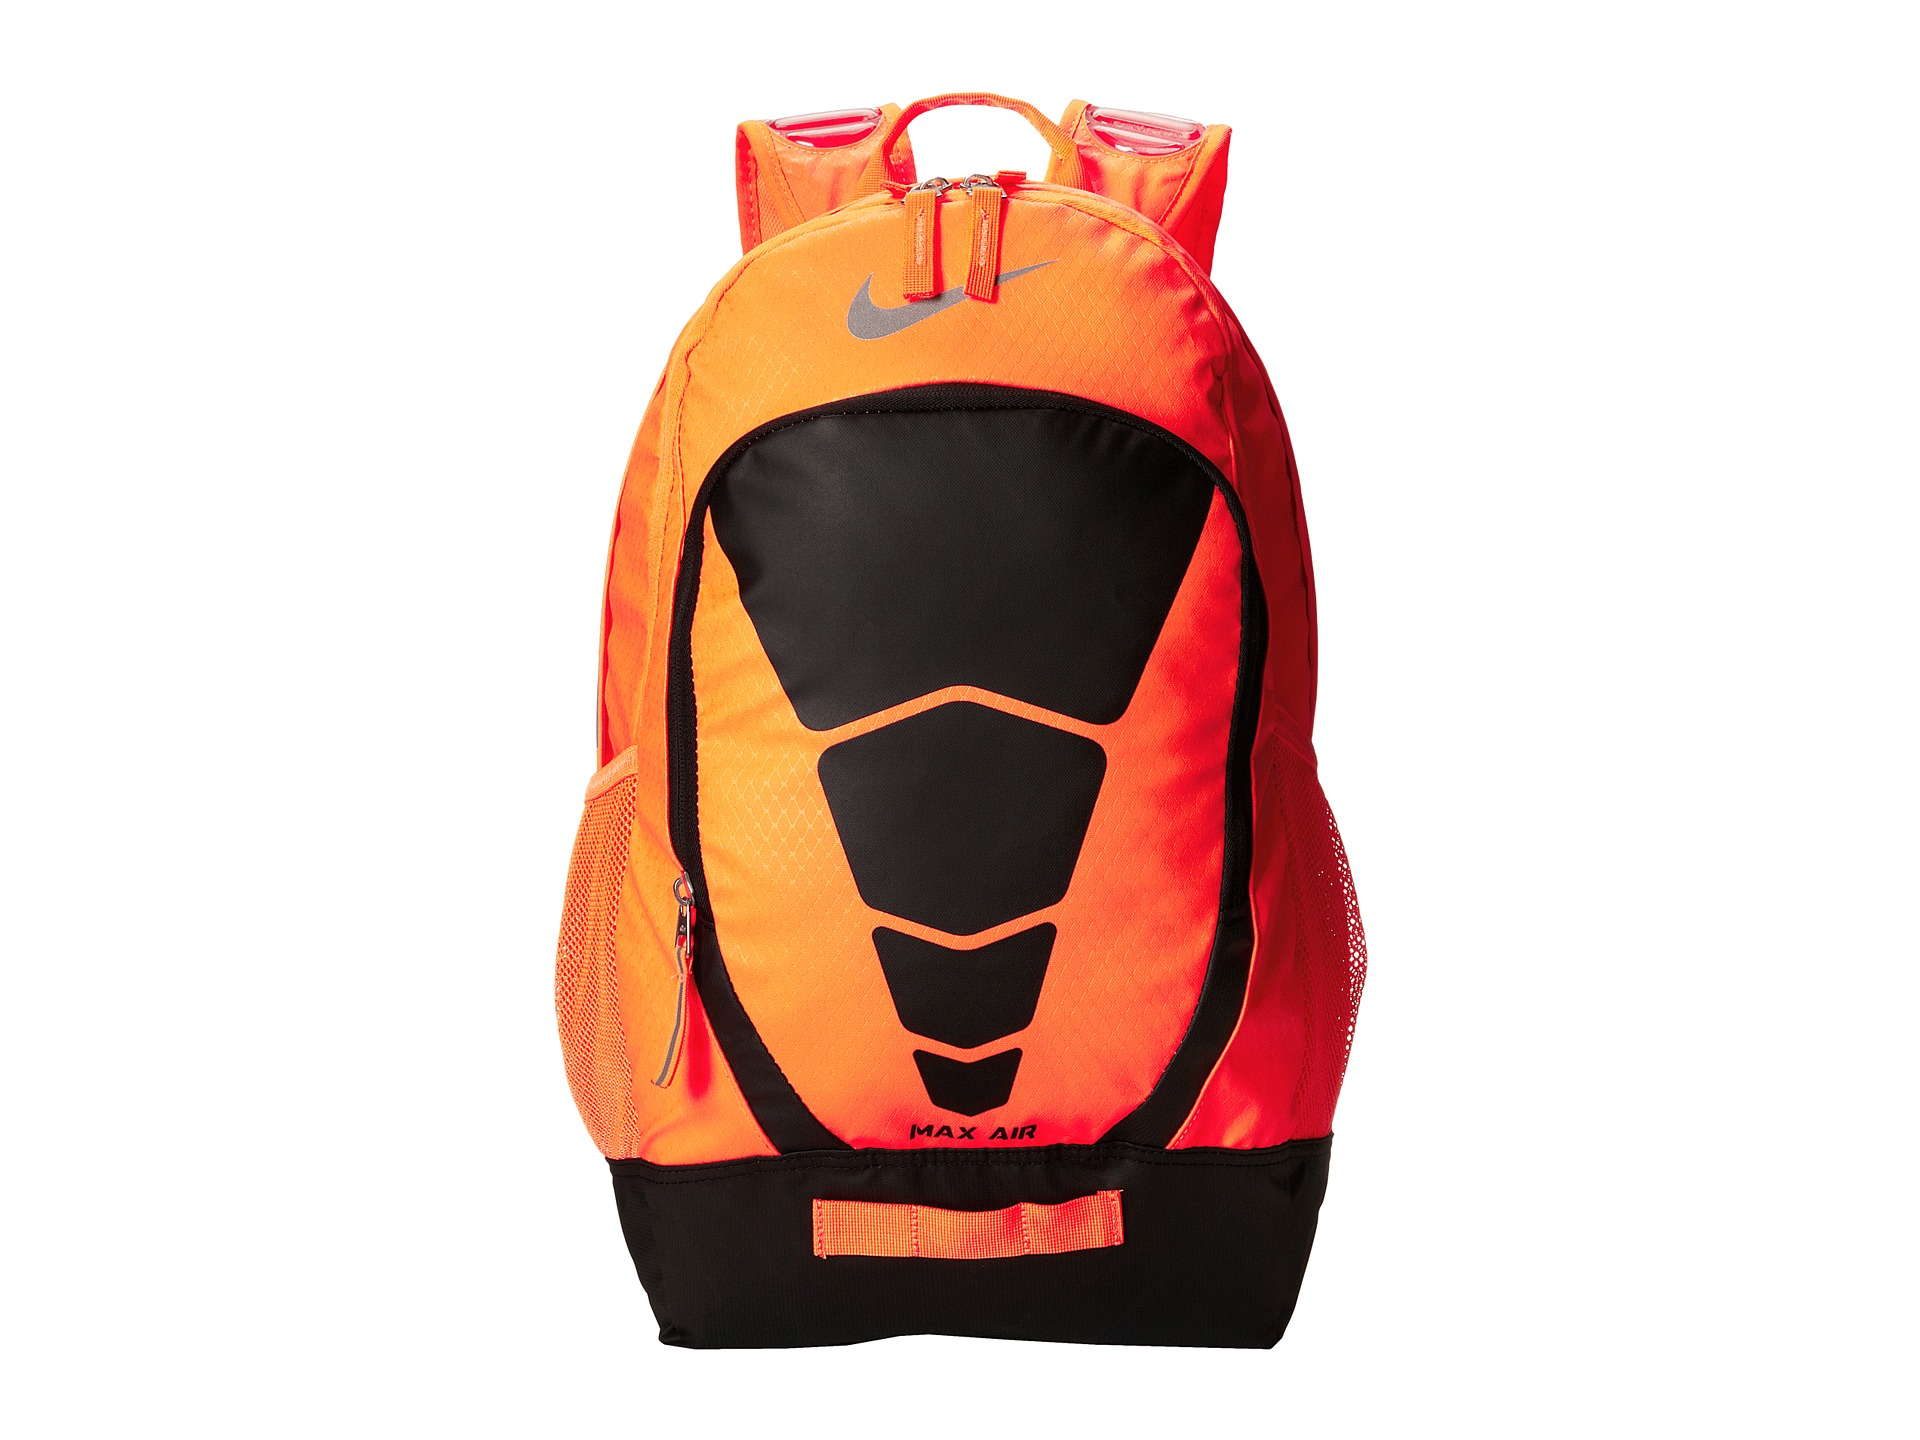 Lyst - Nike Max Air Vapor Backpack in Orange bb7968c7fa